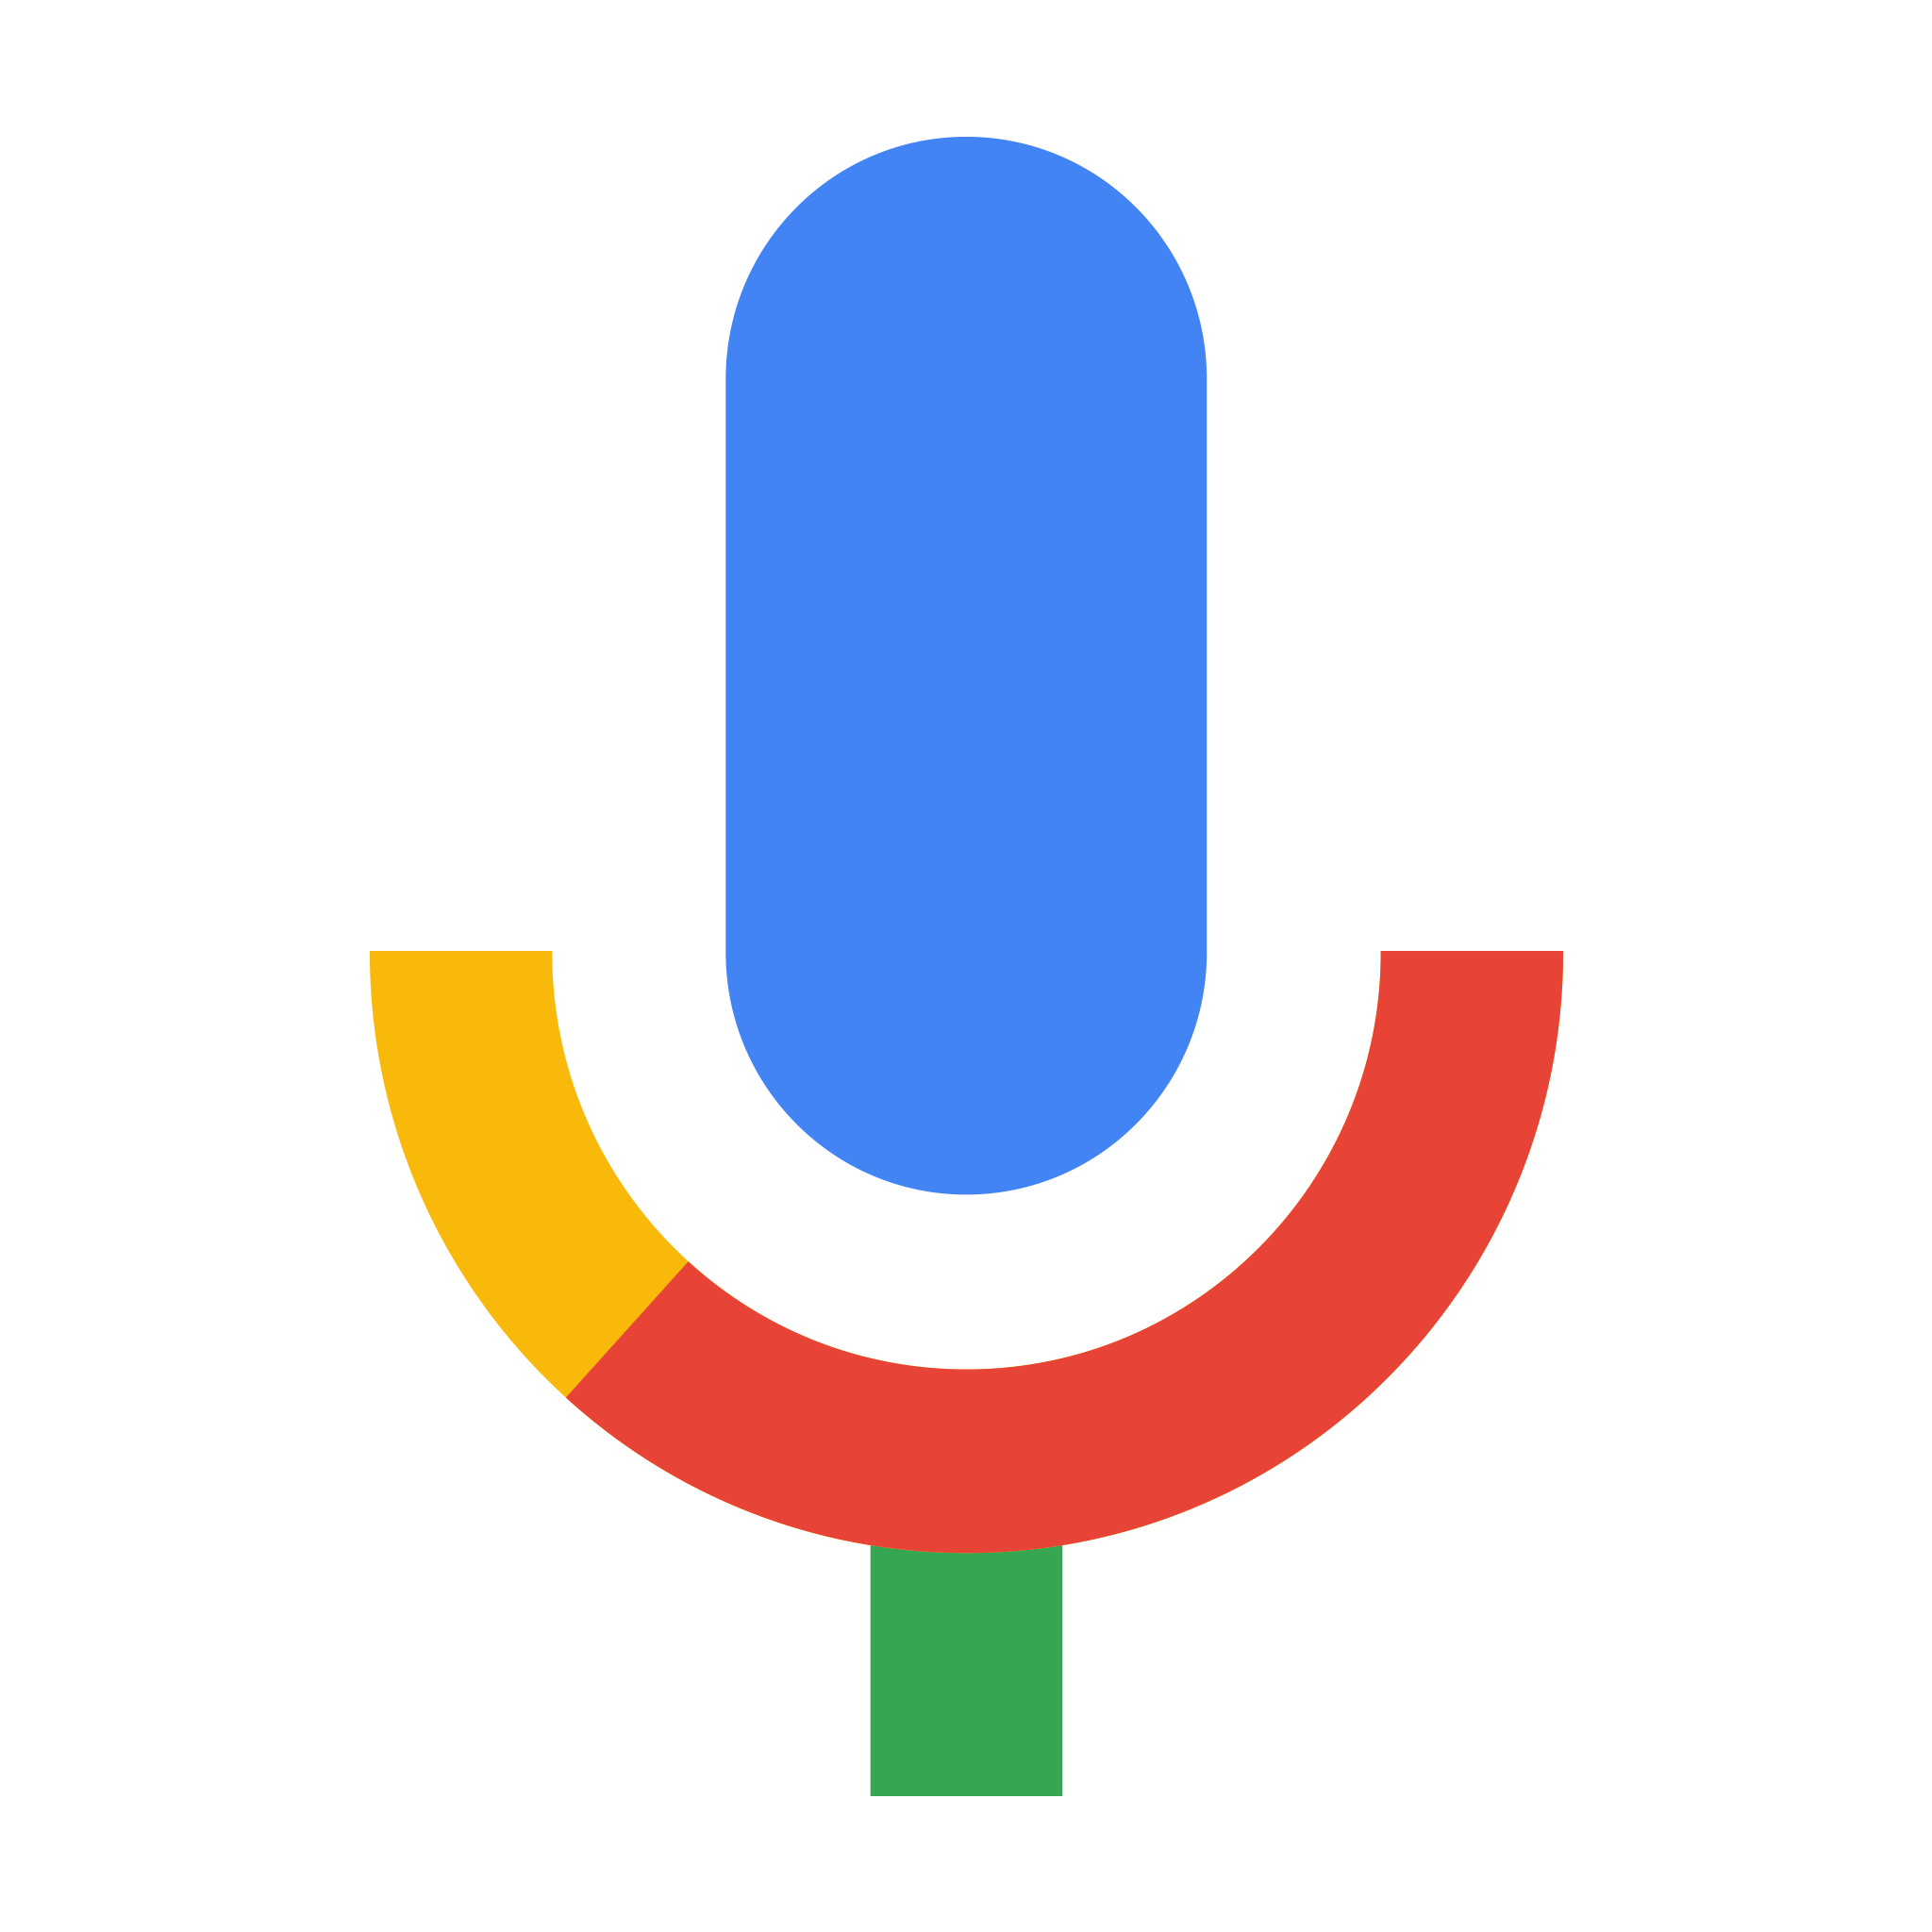 Voice Search Icon PNG Image Free Download searchpng.com.